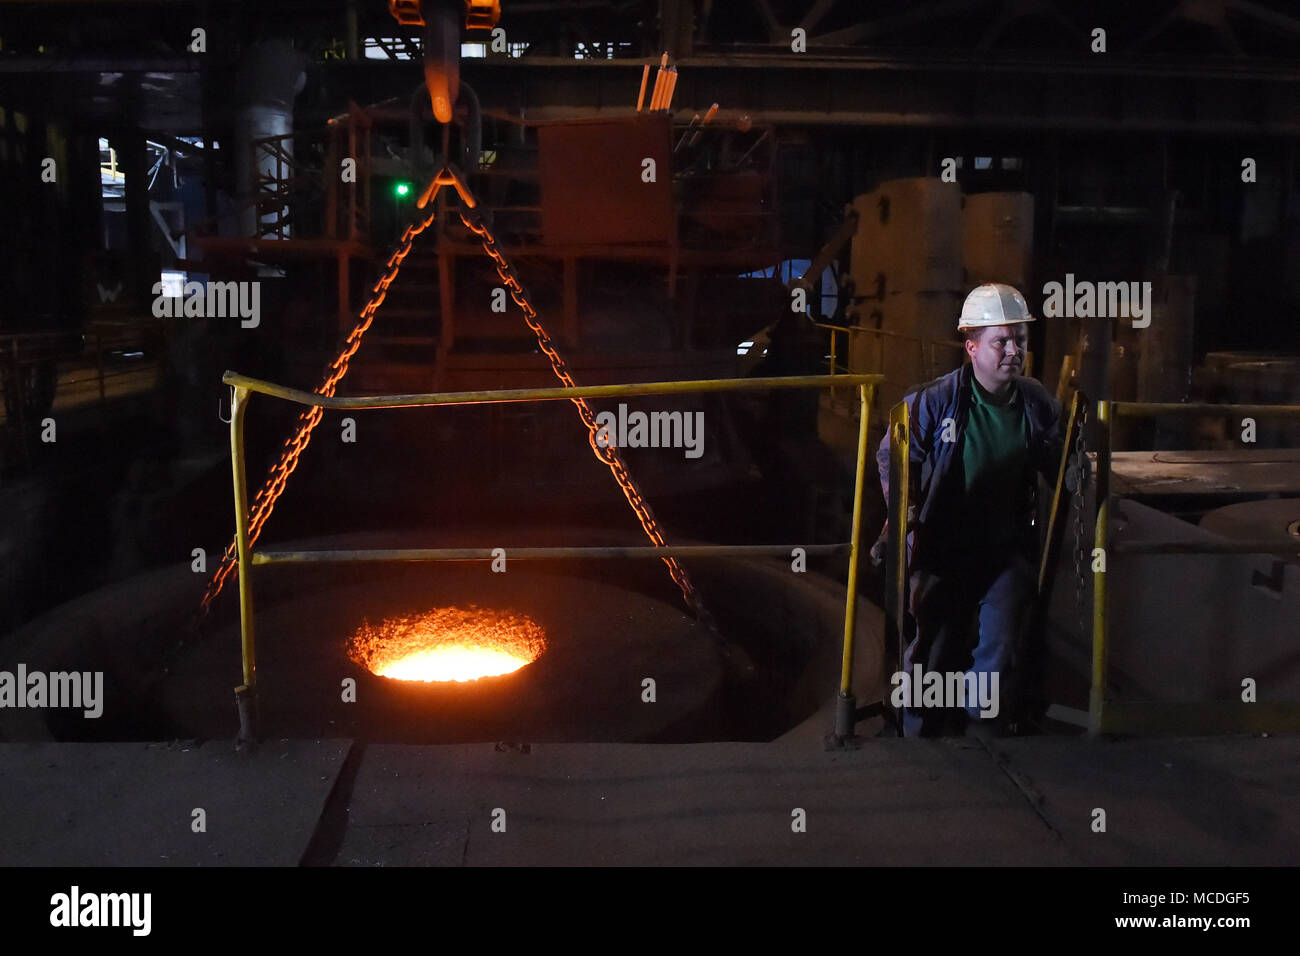 Ostrava, Czech Republic. 16th Apr, 2018. Vitkovice Heavy Machinery (VHM), a unit of Vitkovice Machinery Group of entrepreneur Jan Svetlik, is resuming full production of its steel plant which has been restricted due to a lack of operating capital since mid-January. On the photo is seen a part of the production plant in Ostrava, Czech Republic, on April 16, 2018. Credit: Jaroslav Ozana/CTK Photo/Alamy Live News - Stock Image